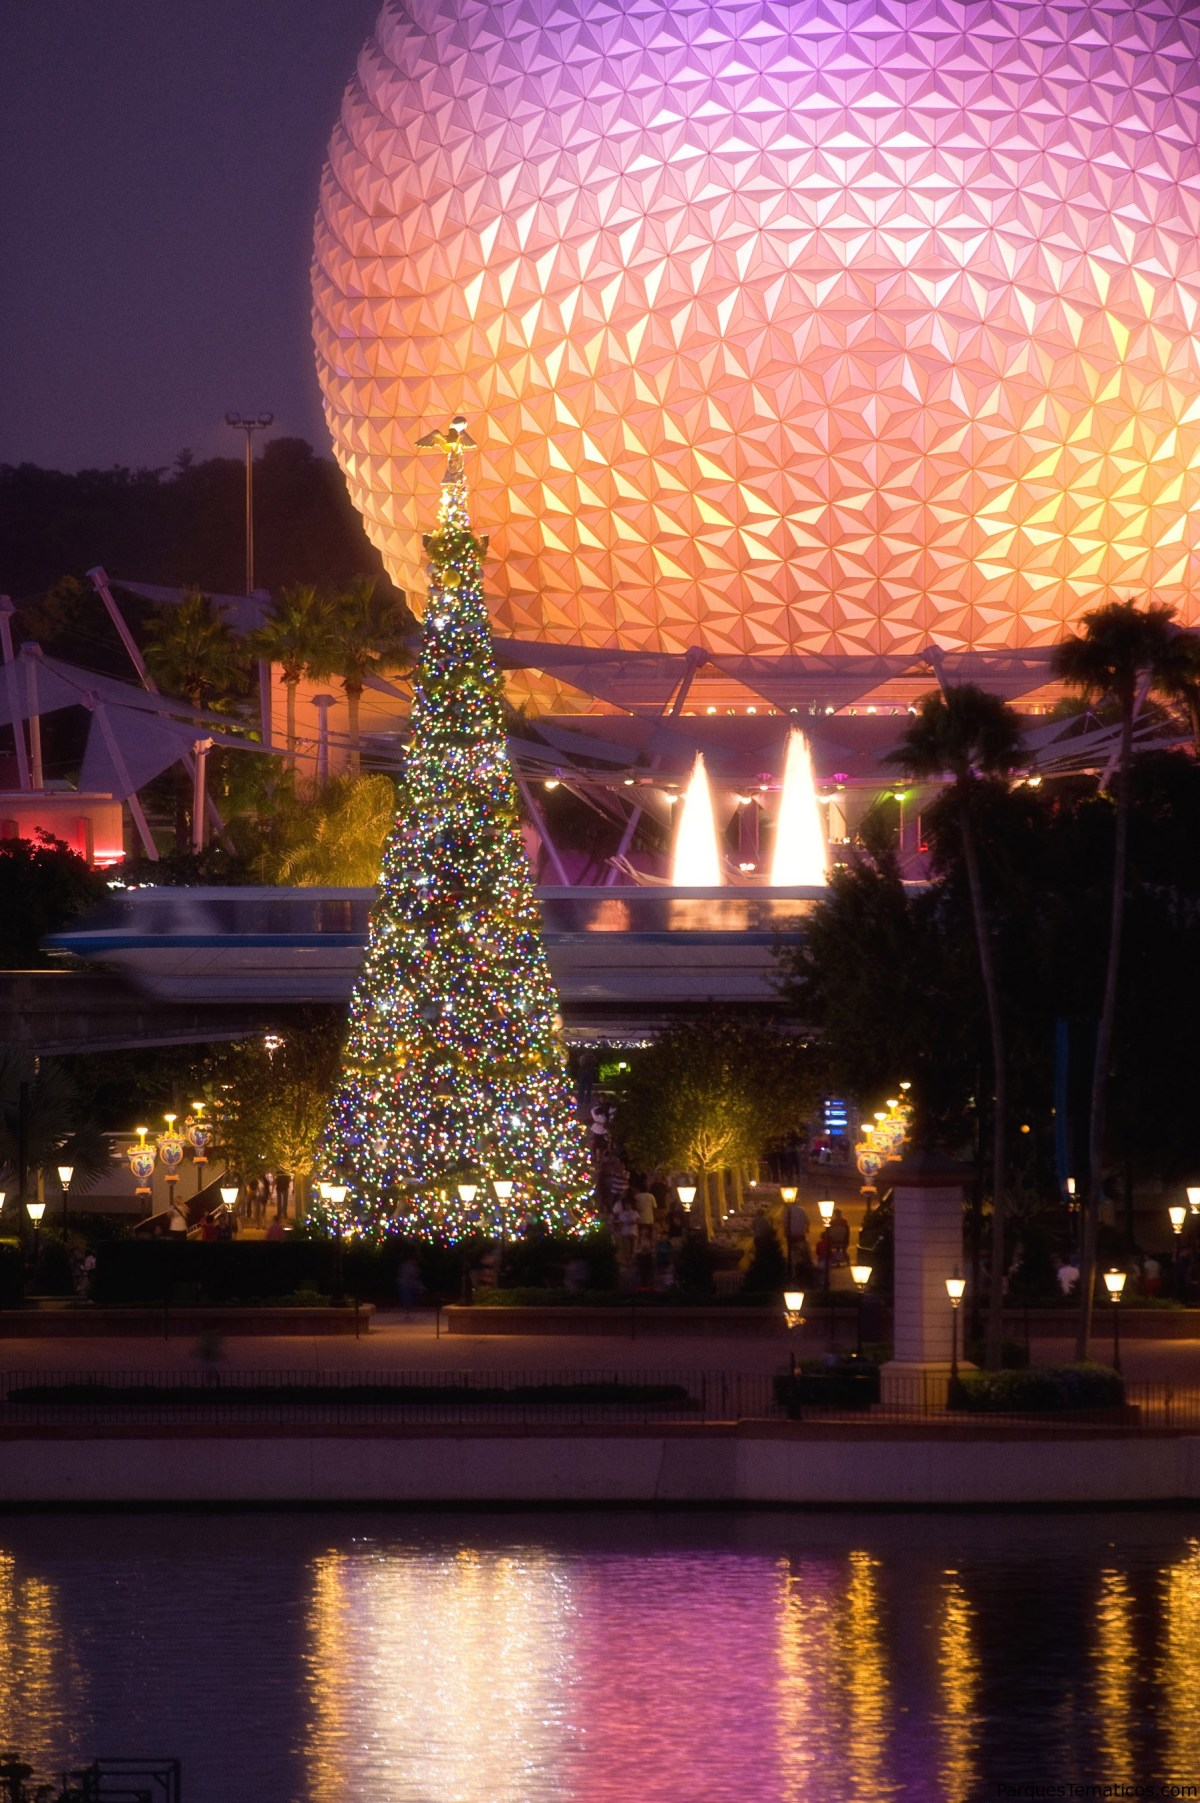 Nuevas festividades navideñas en Disney's Animal Kingdom en Walt Disney World Resort